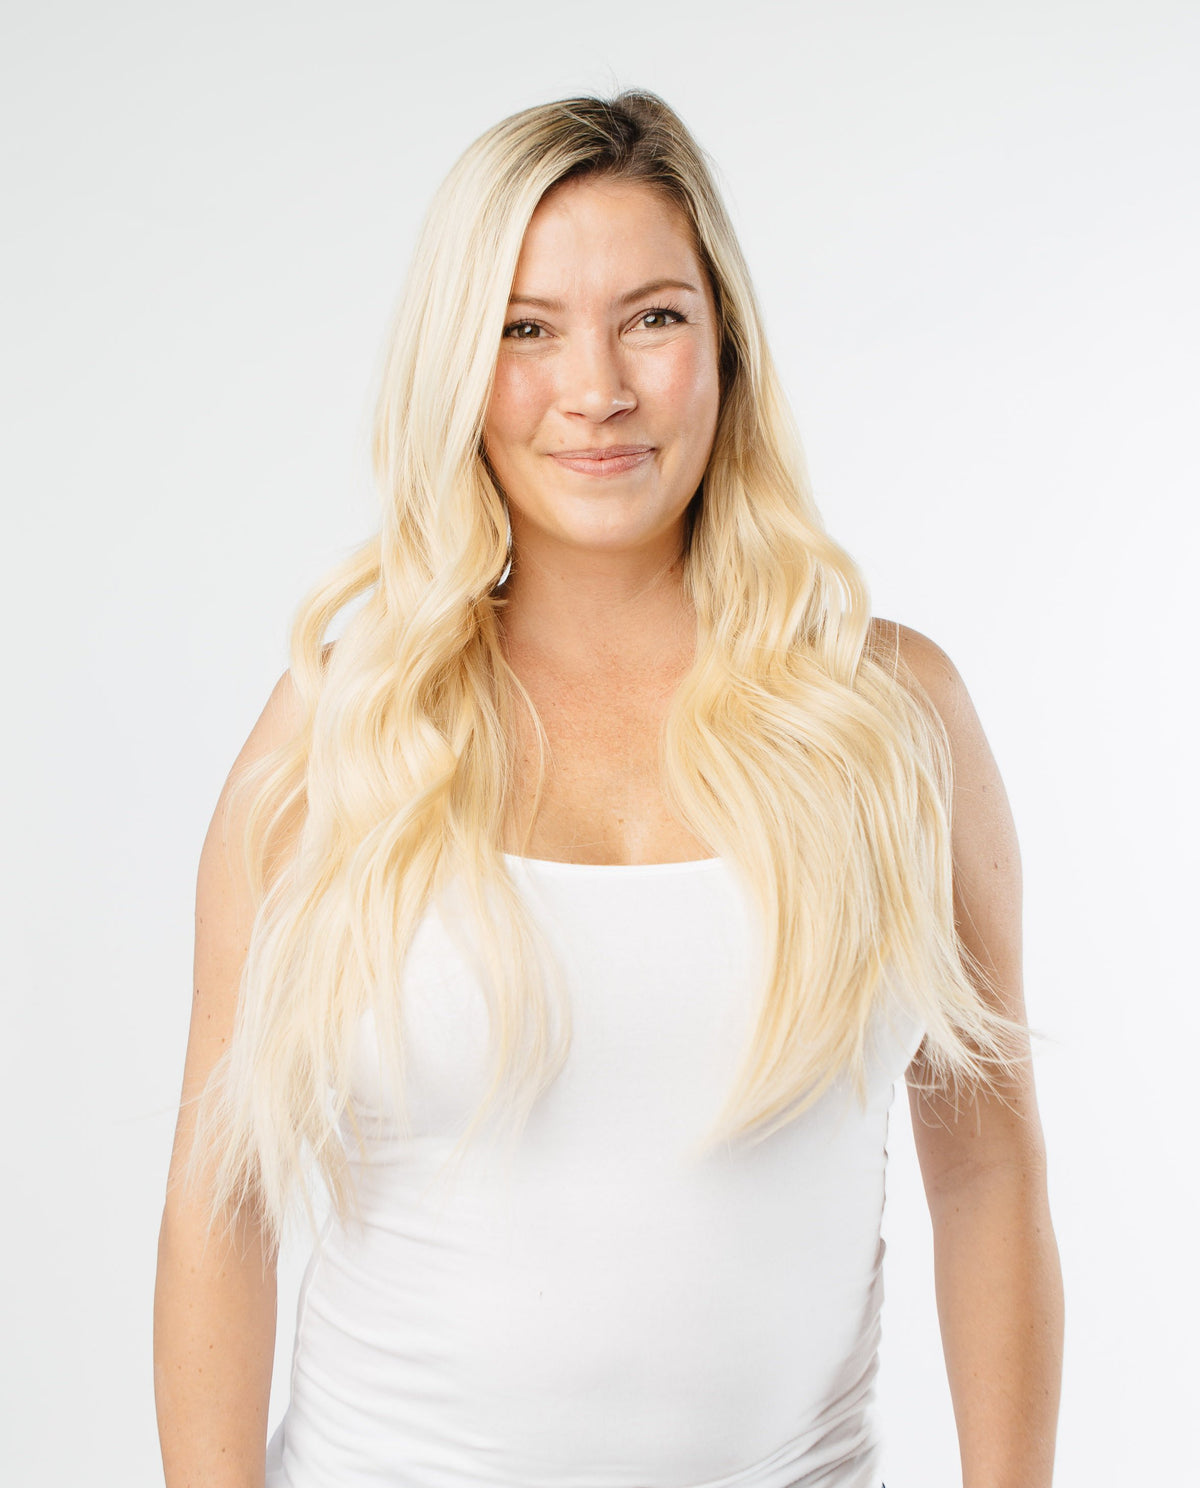 Laced Hair I-Tip Extensions Ombré #8/613